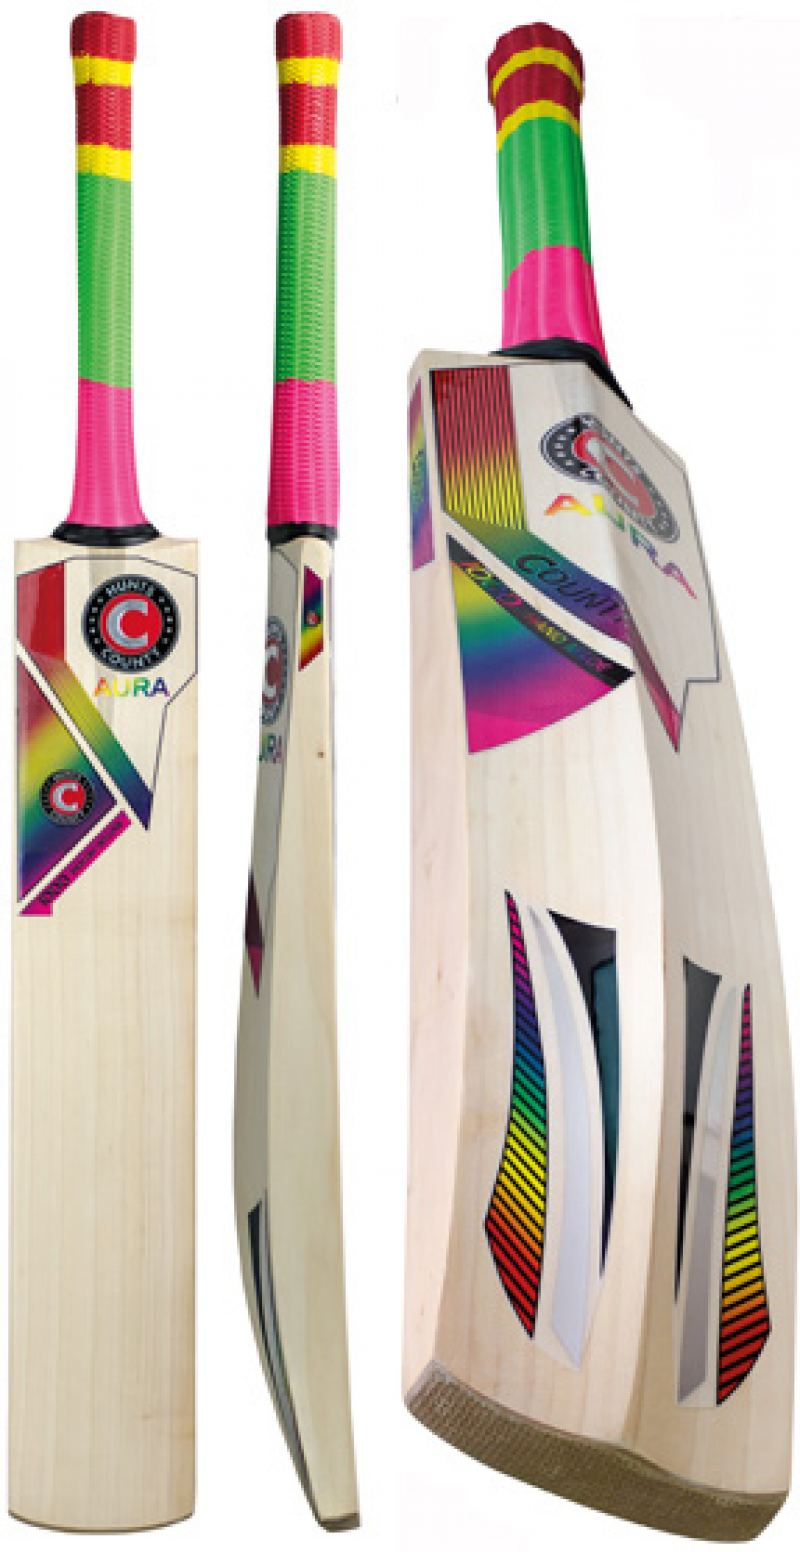 Hunts County Aura 900 Cricket Bat